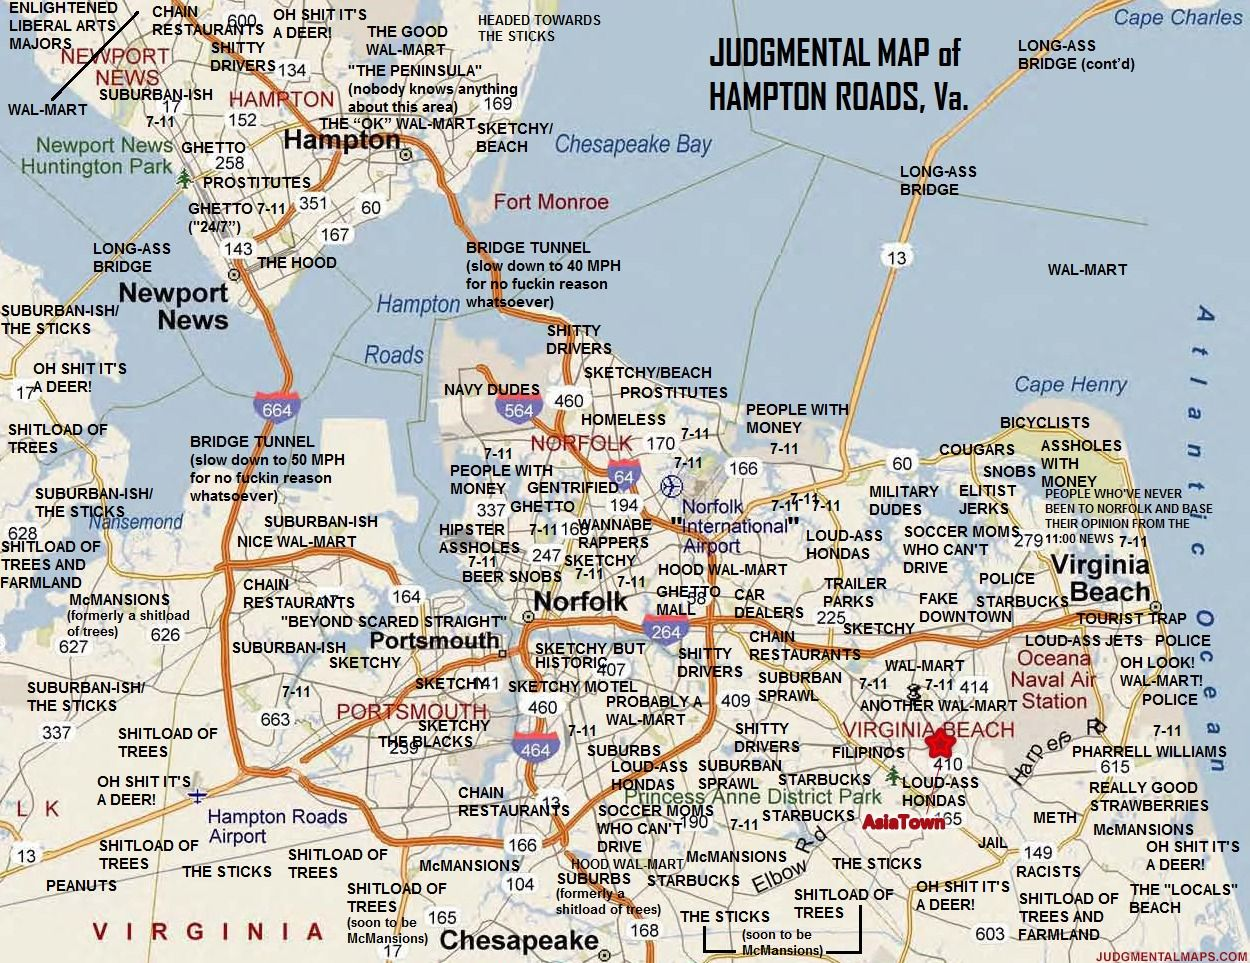 Judgmental Map Of Richmond Va Diagrams Get Free Images About - Chicago judgemental map